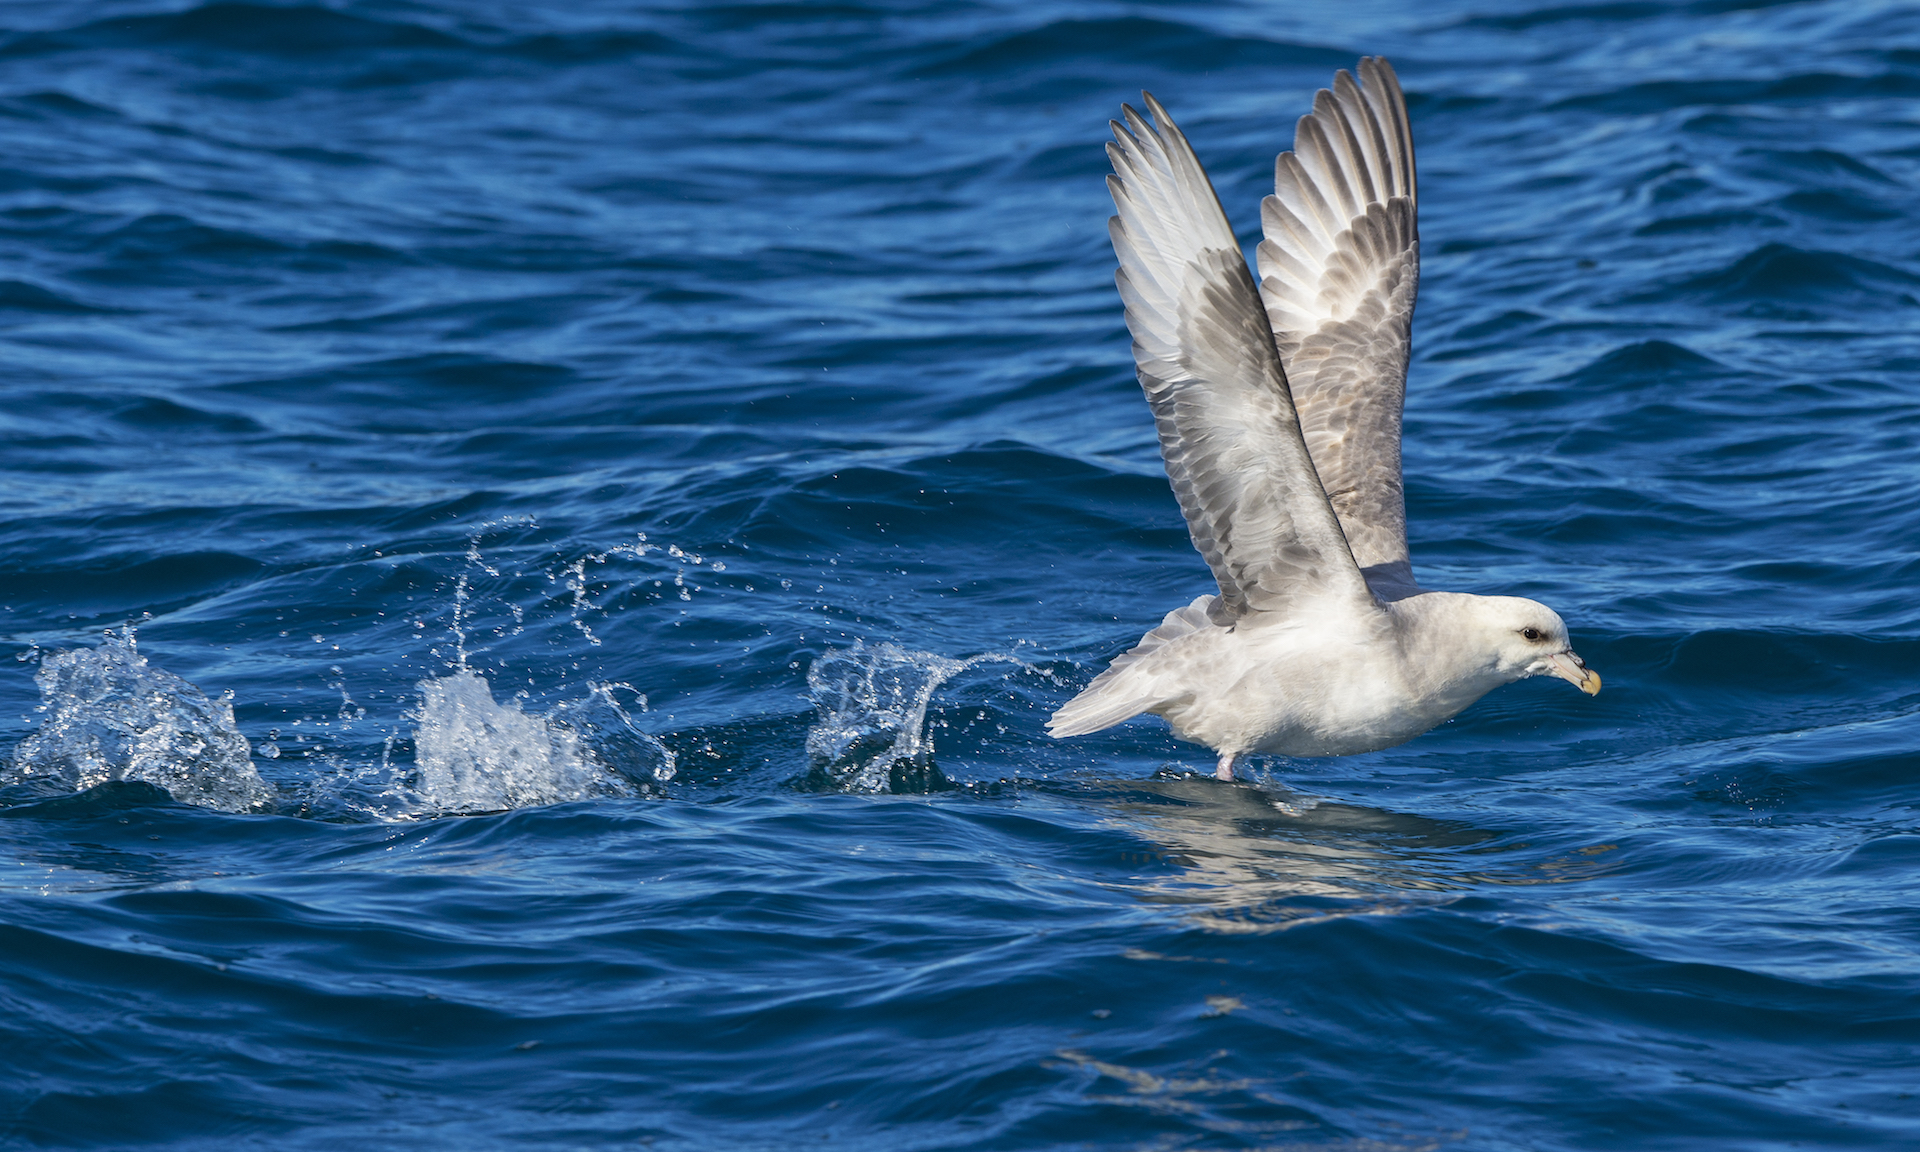 Northern Fulmars are opportunistic feeders, known to follow tourist boats in Svalbard, picking scrap food that might be tossed overboard, or hunting for fish in the wake of the water churned by the boat's movement.  Photo: Dhritiman Mukherjee